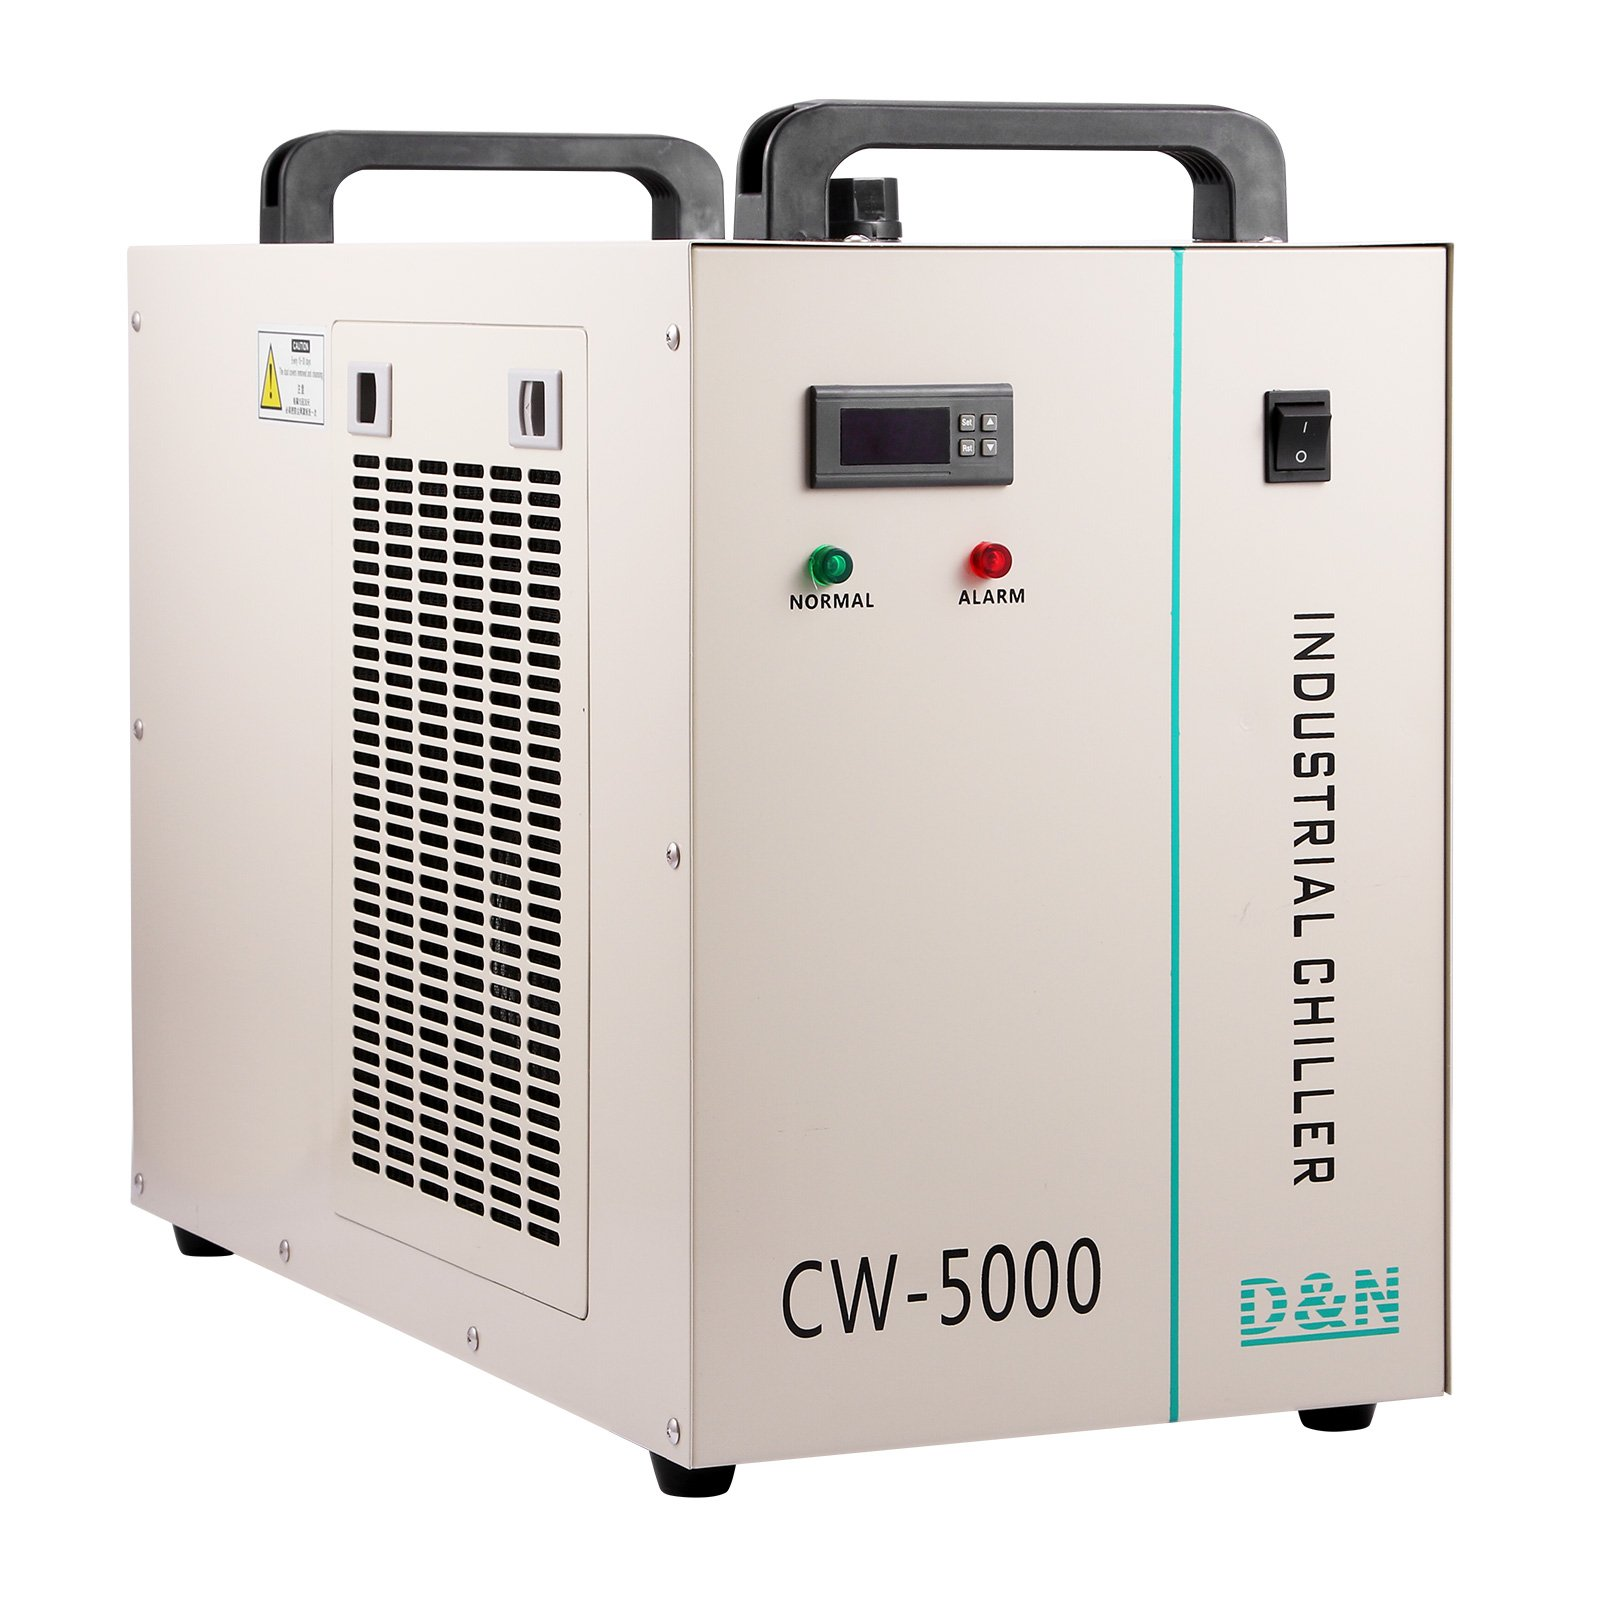 BestEquip 800W Industrial Chiller CW-5000DG 6L Capacity Water Chiller Thermolysis Industrial Water Chiller Machine for 80/100W CO2 Glass Tube (CW-5000DG 800W 6L Capacity)